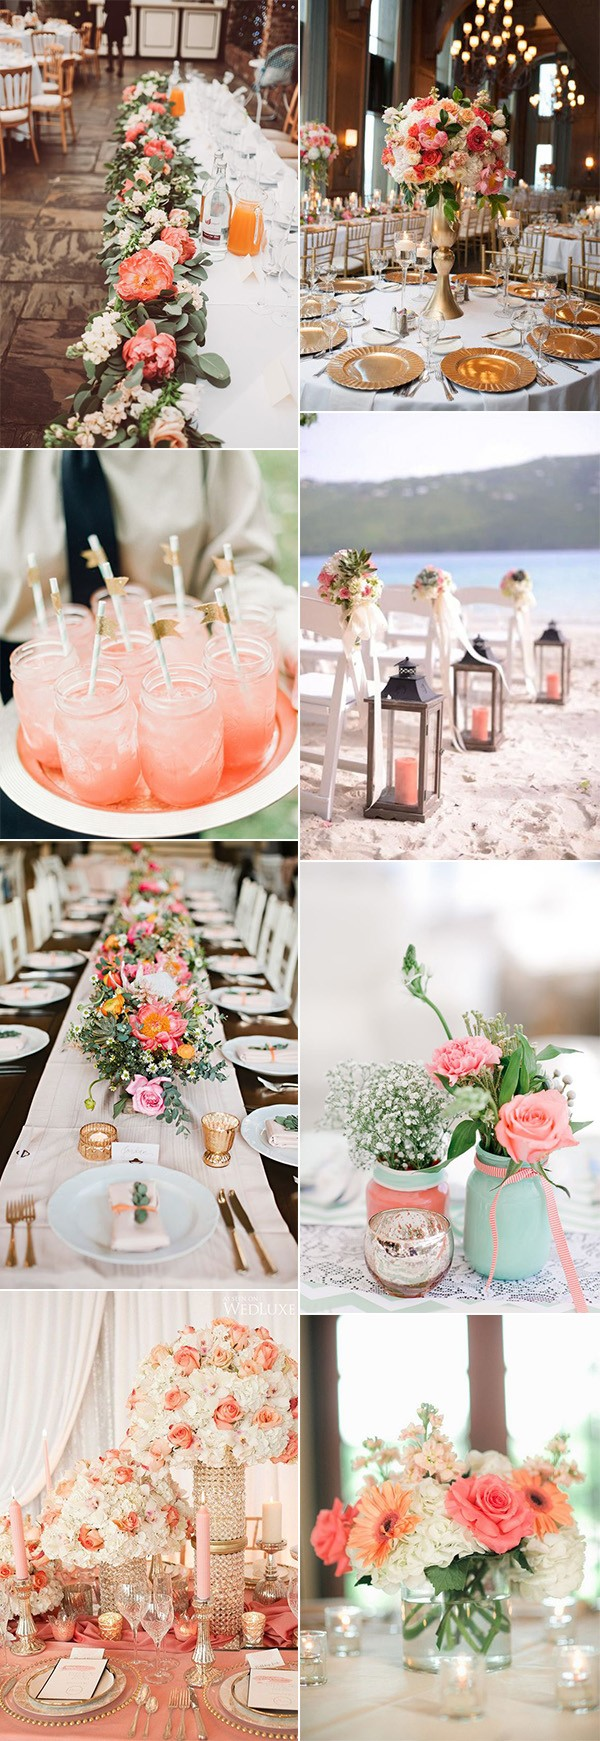 coral wedding decoration ideas for 2019 trends